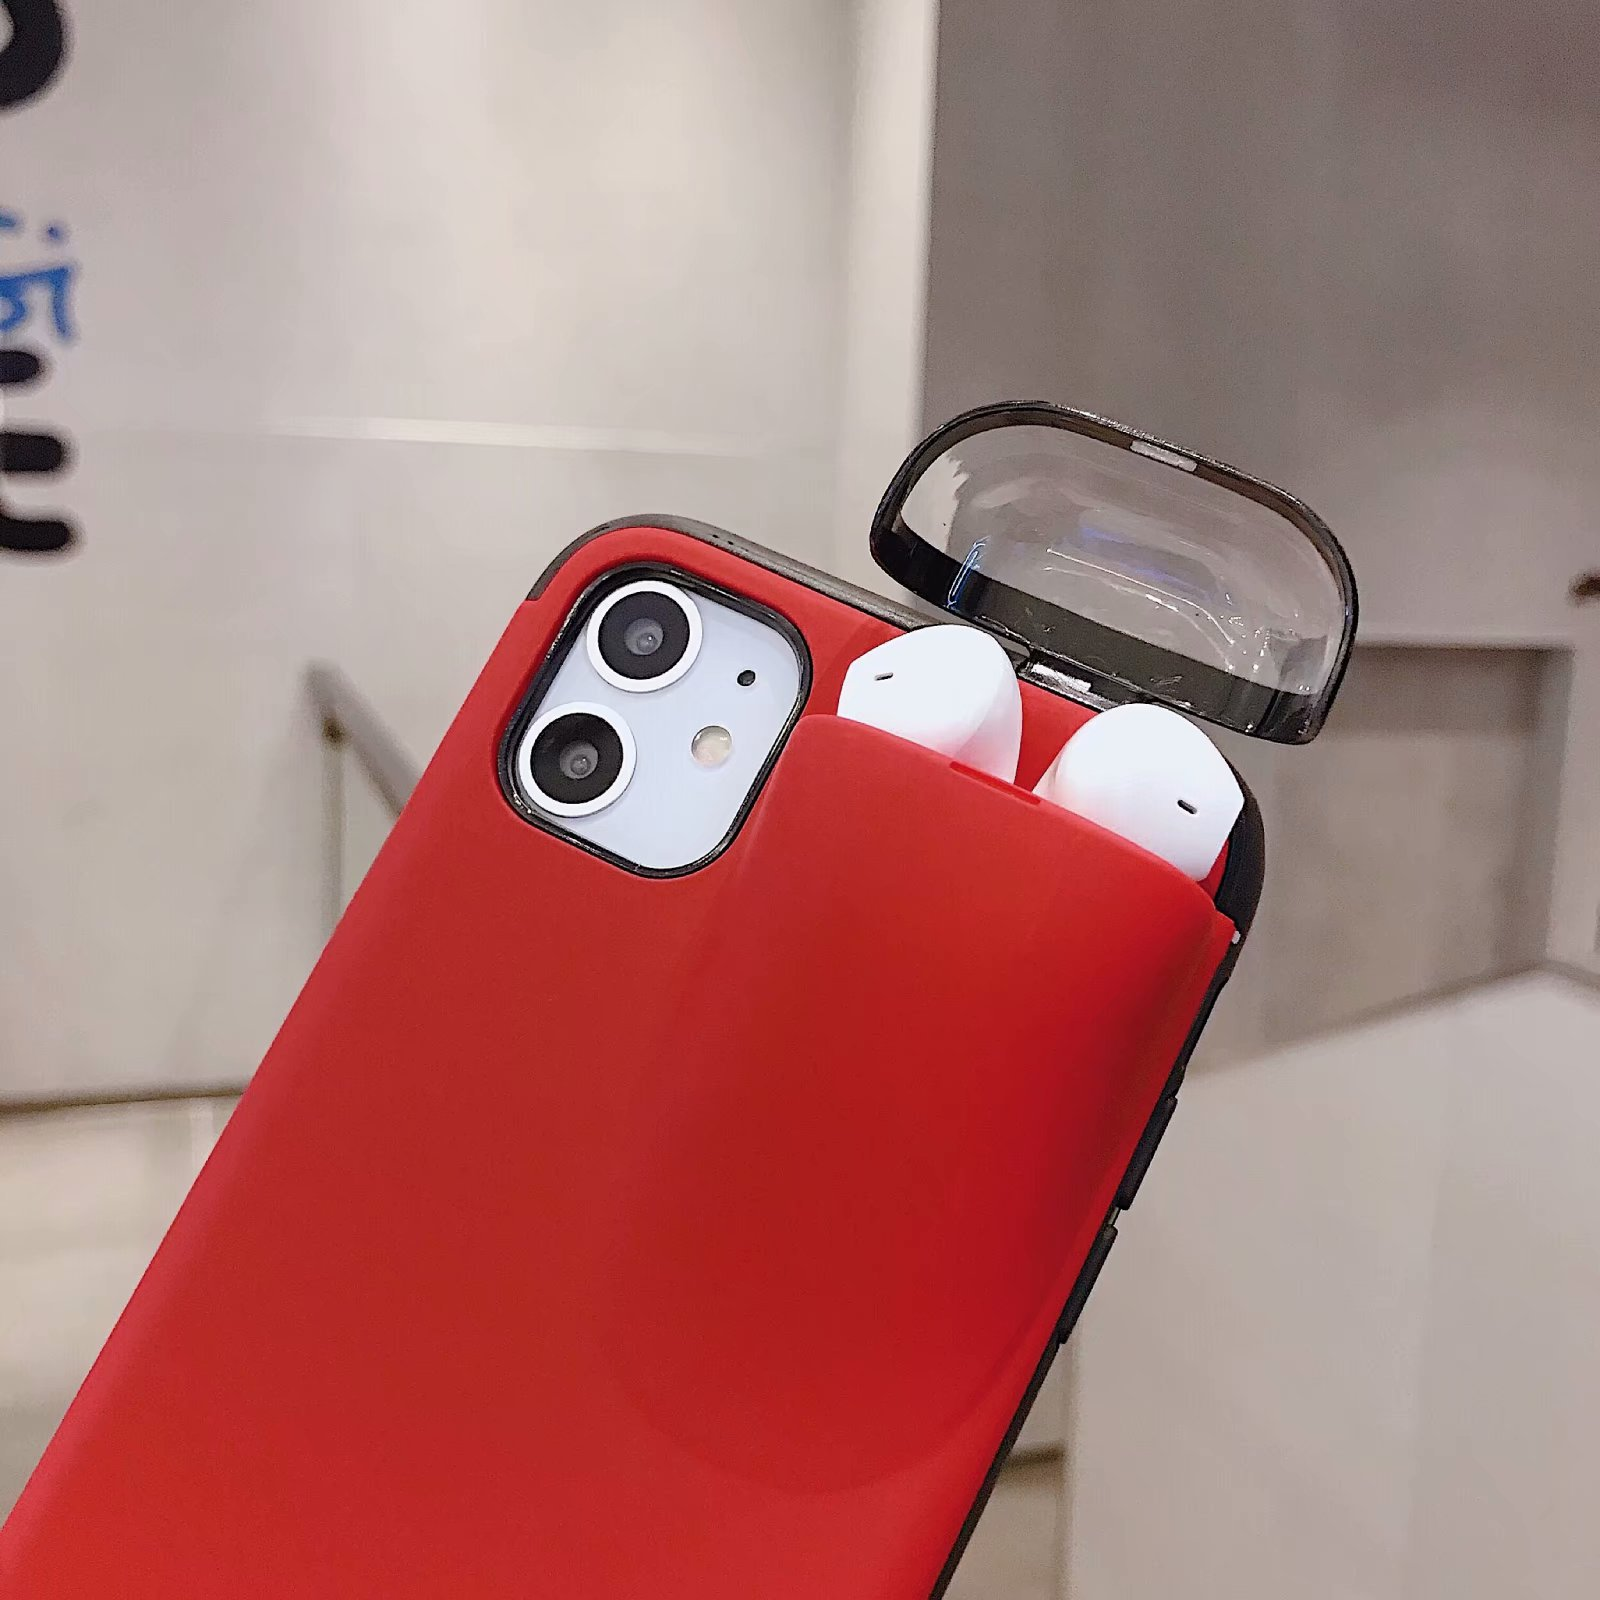 (🔥Last 2 Days Promotion- 60% OFF🔥) 2 in 1 Airpods IPhone Case